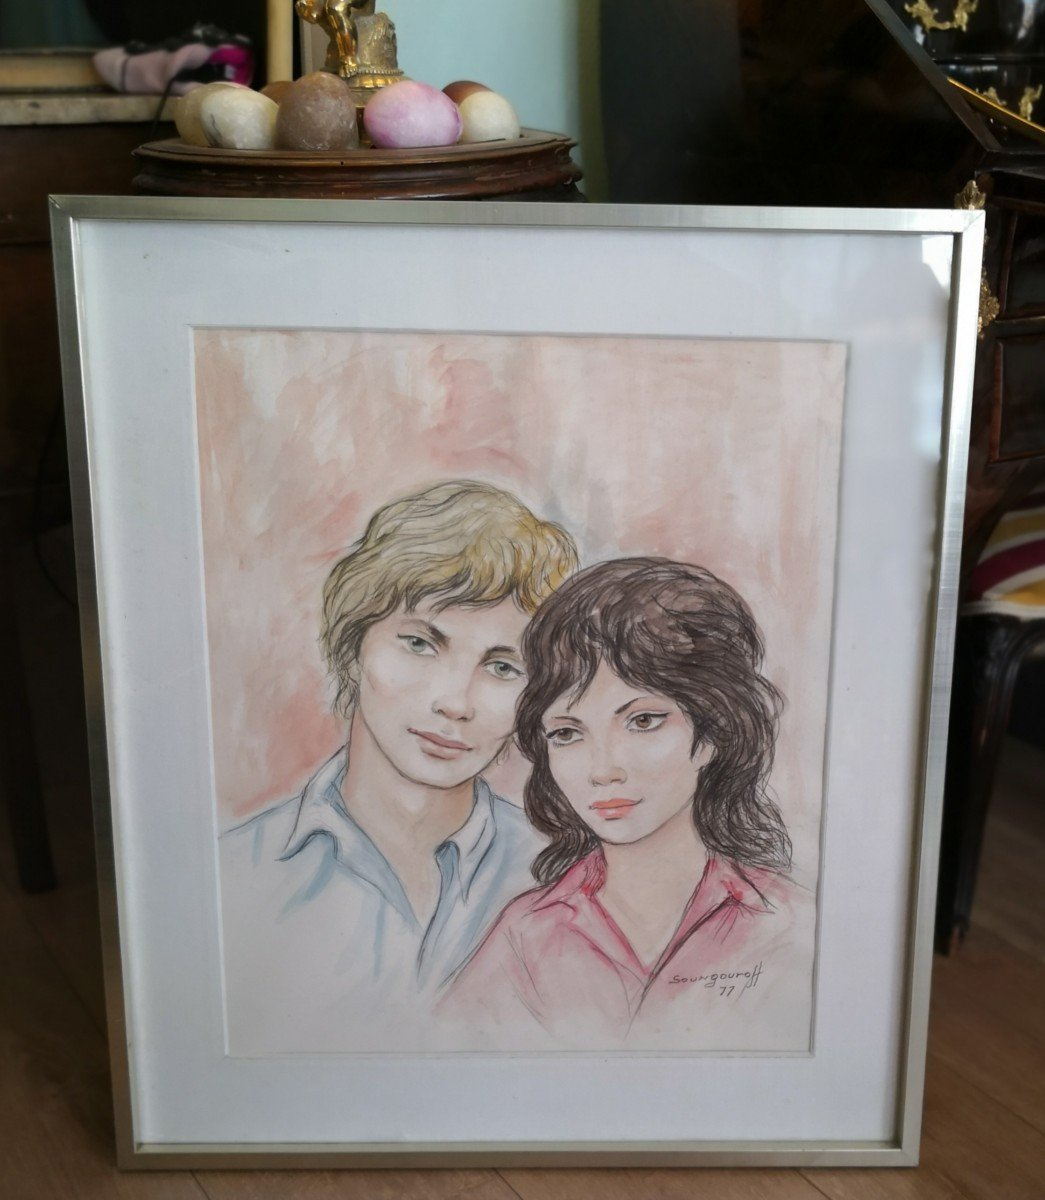 Watercolor Drawing Couple Signed And Dated Soungouroff 1977